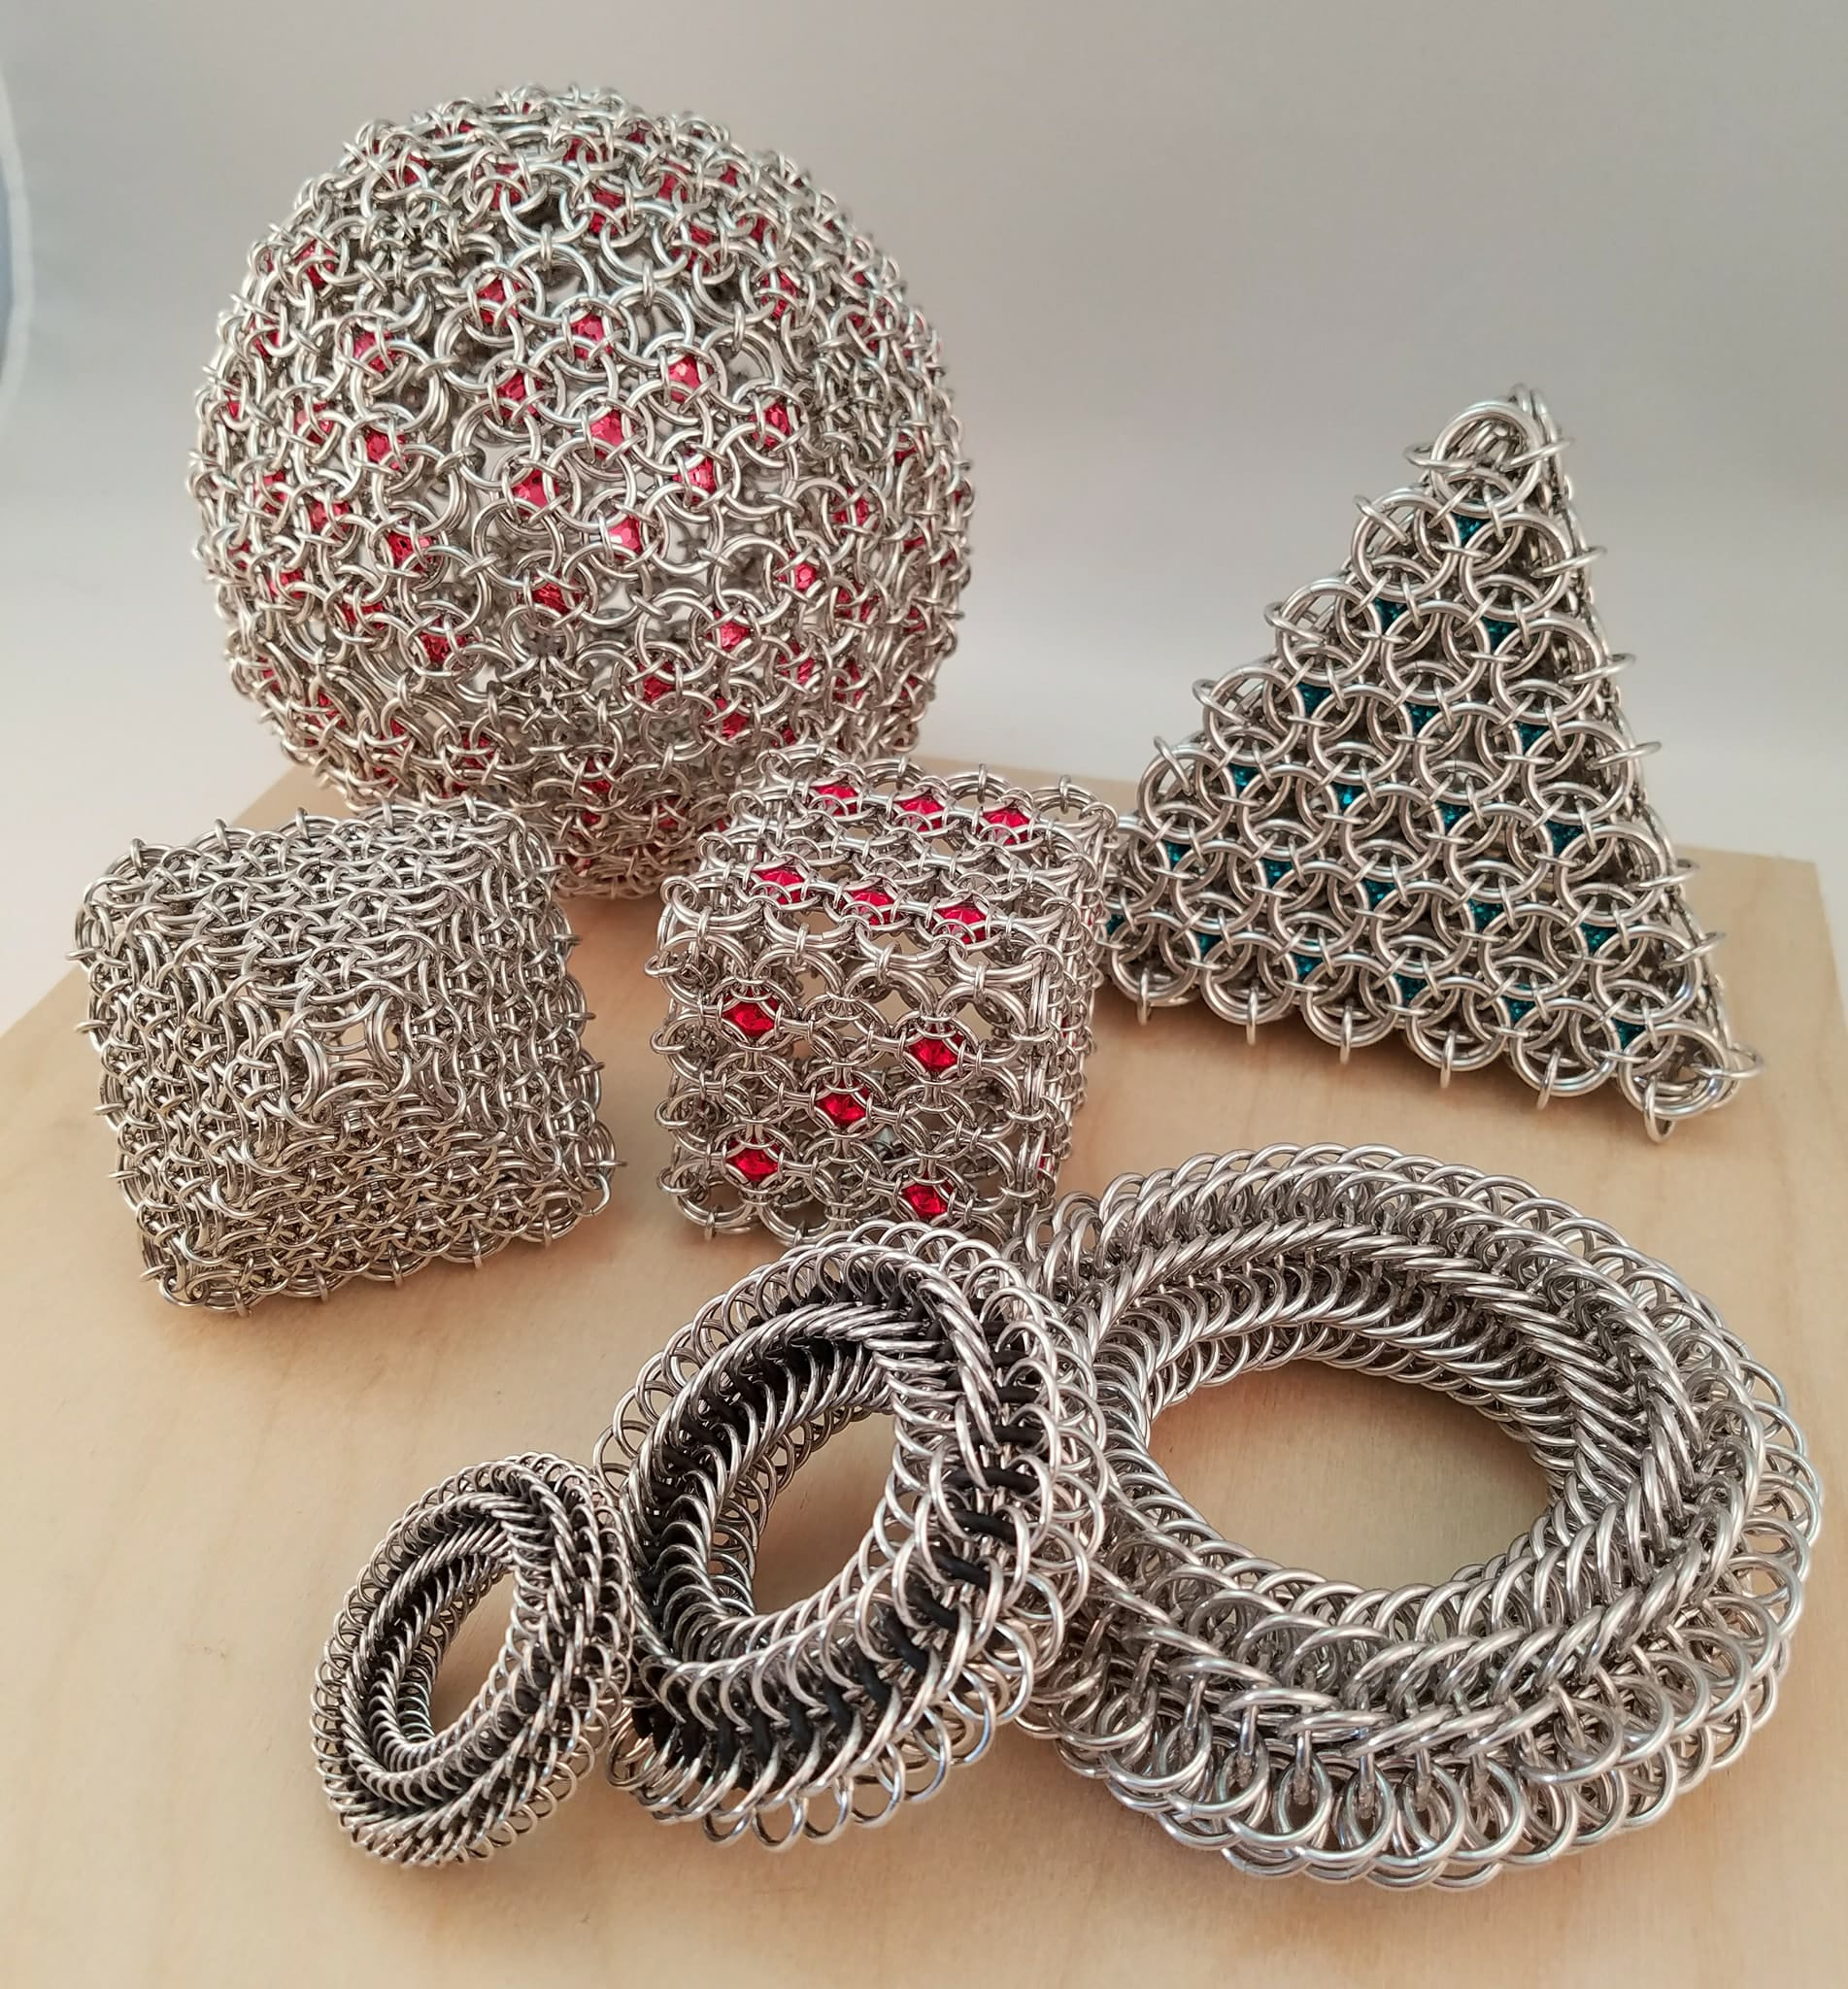 3D chainmaille shapes